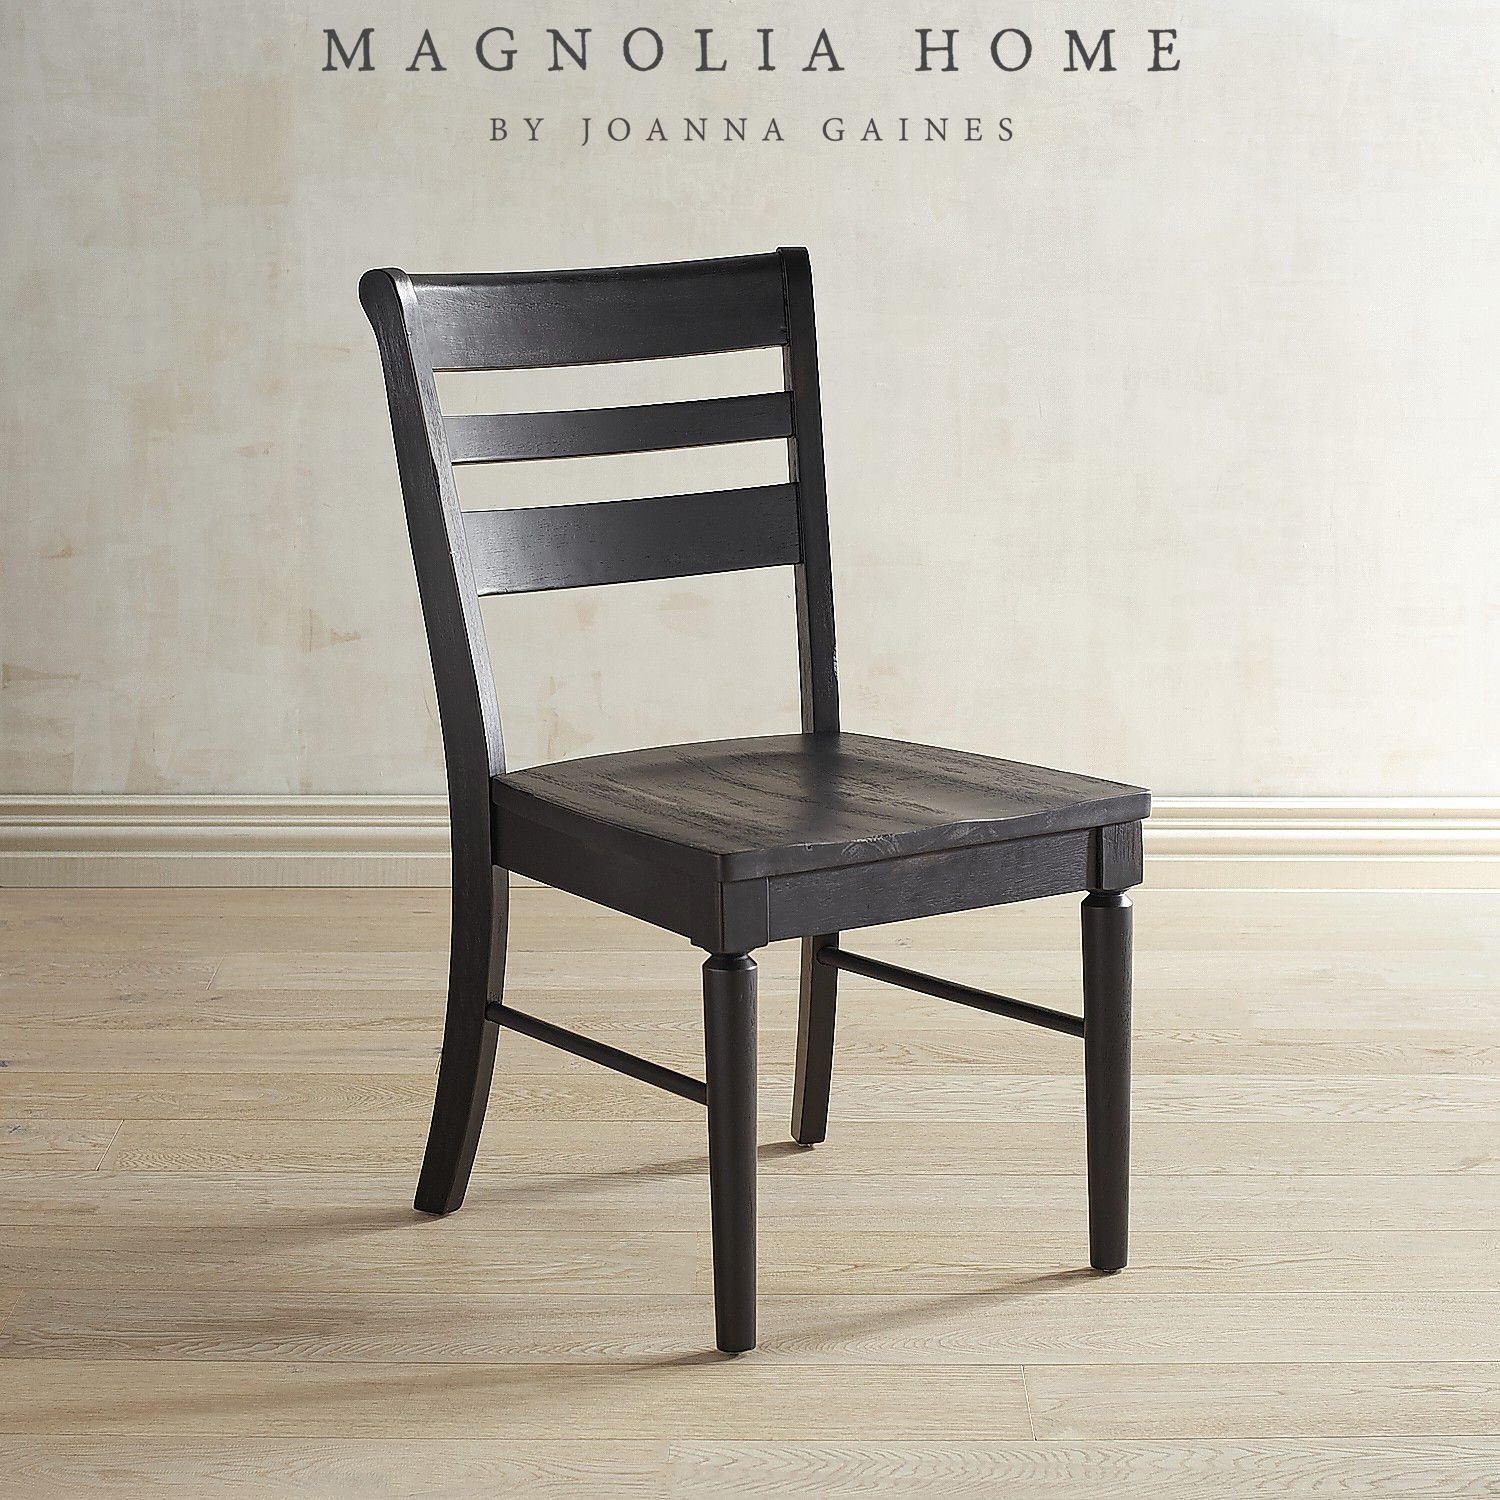 Magnolia Home Kempton Bench Side Chairs Intended For Famous Magnolia Home Kempton Chimney Dining Chair (#8 of 20)